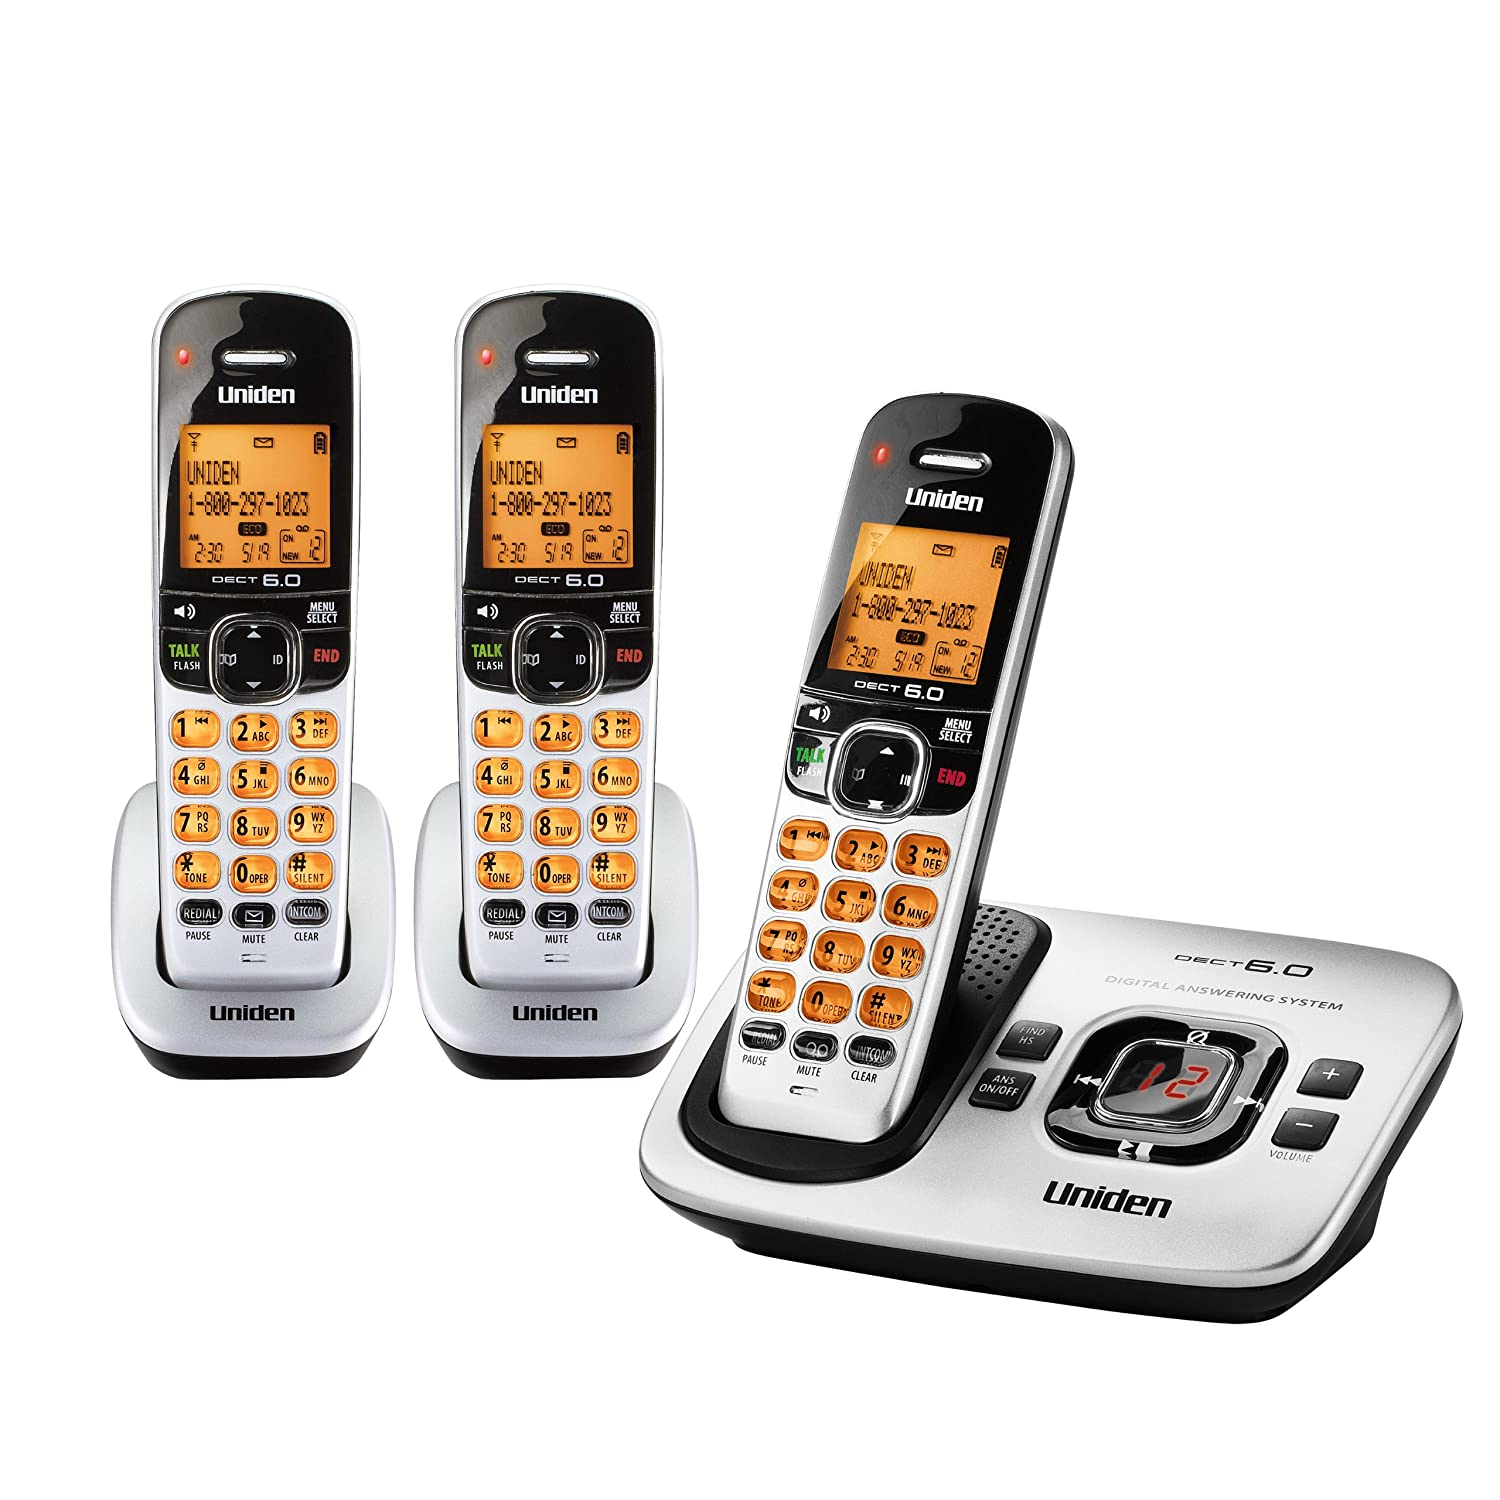 Amazon.com : Uniden DECT 6.0 Expandable Corded/Cordless Phone with  Answering System - Silver, 2 Handsets and 1 Base (D1788-2) : Corded  Cordless Combination ...